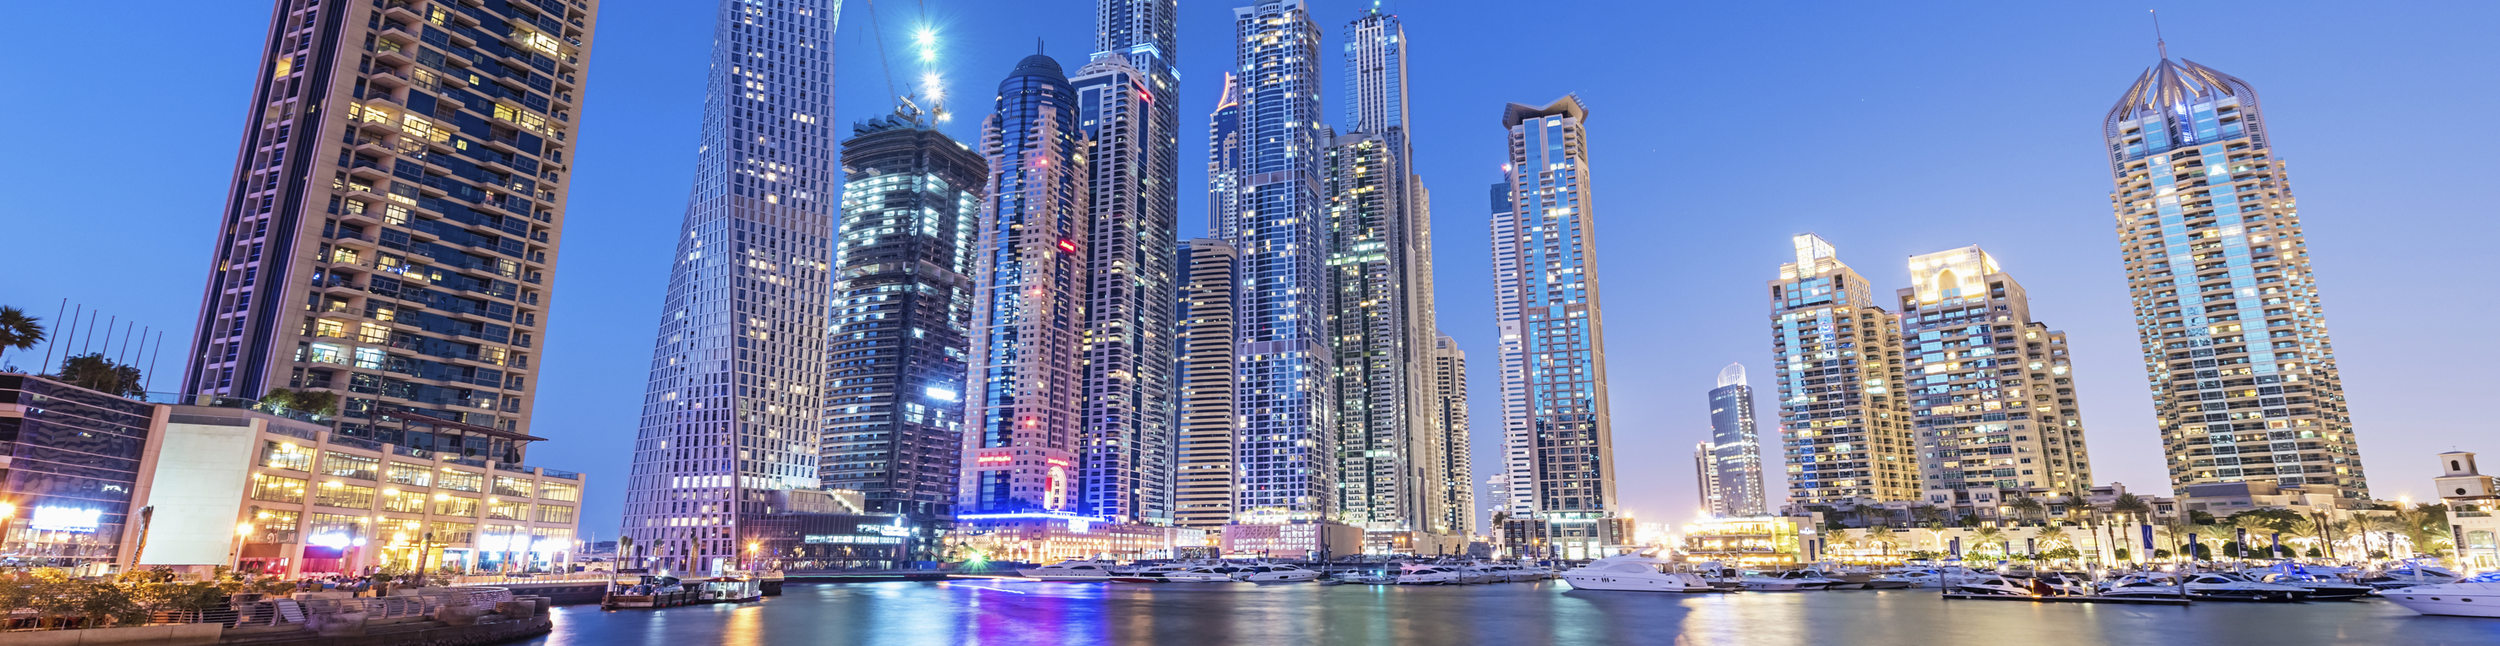 Dubai coastal city view at night